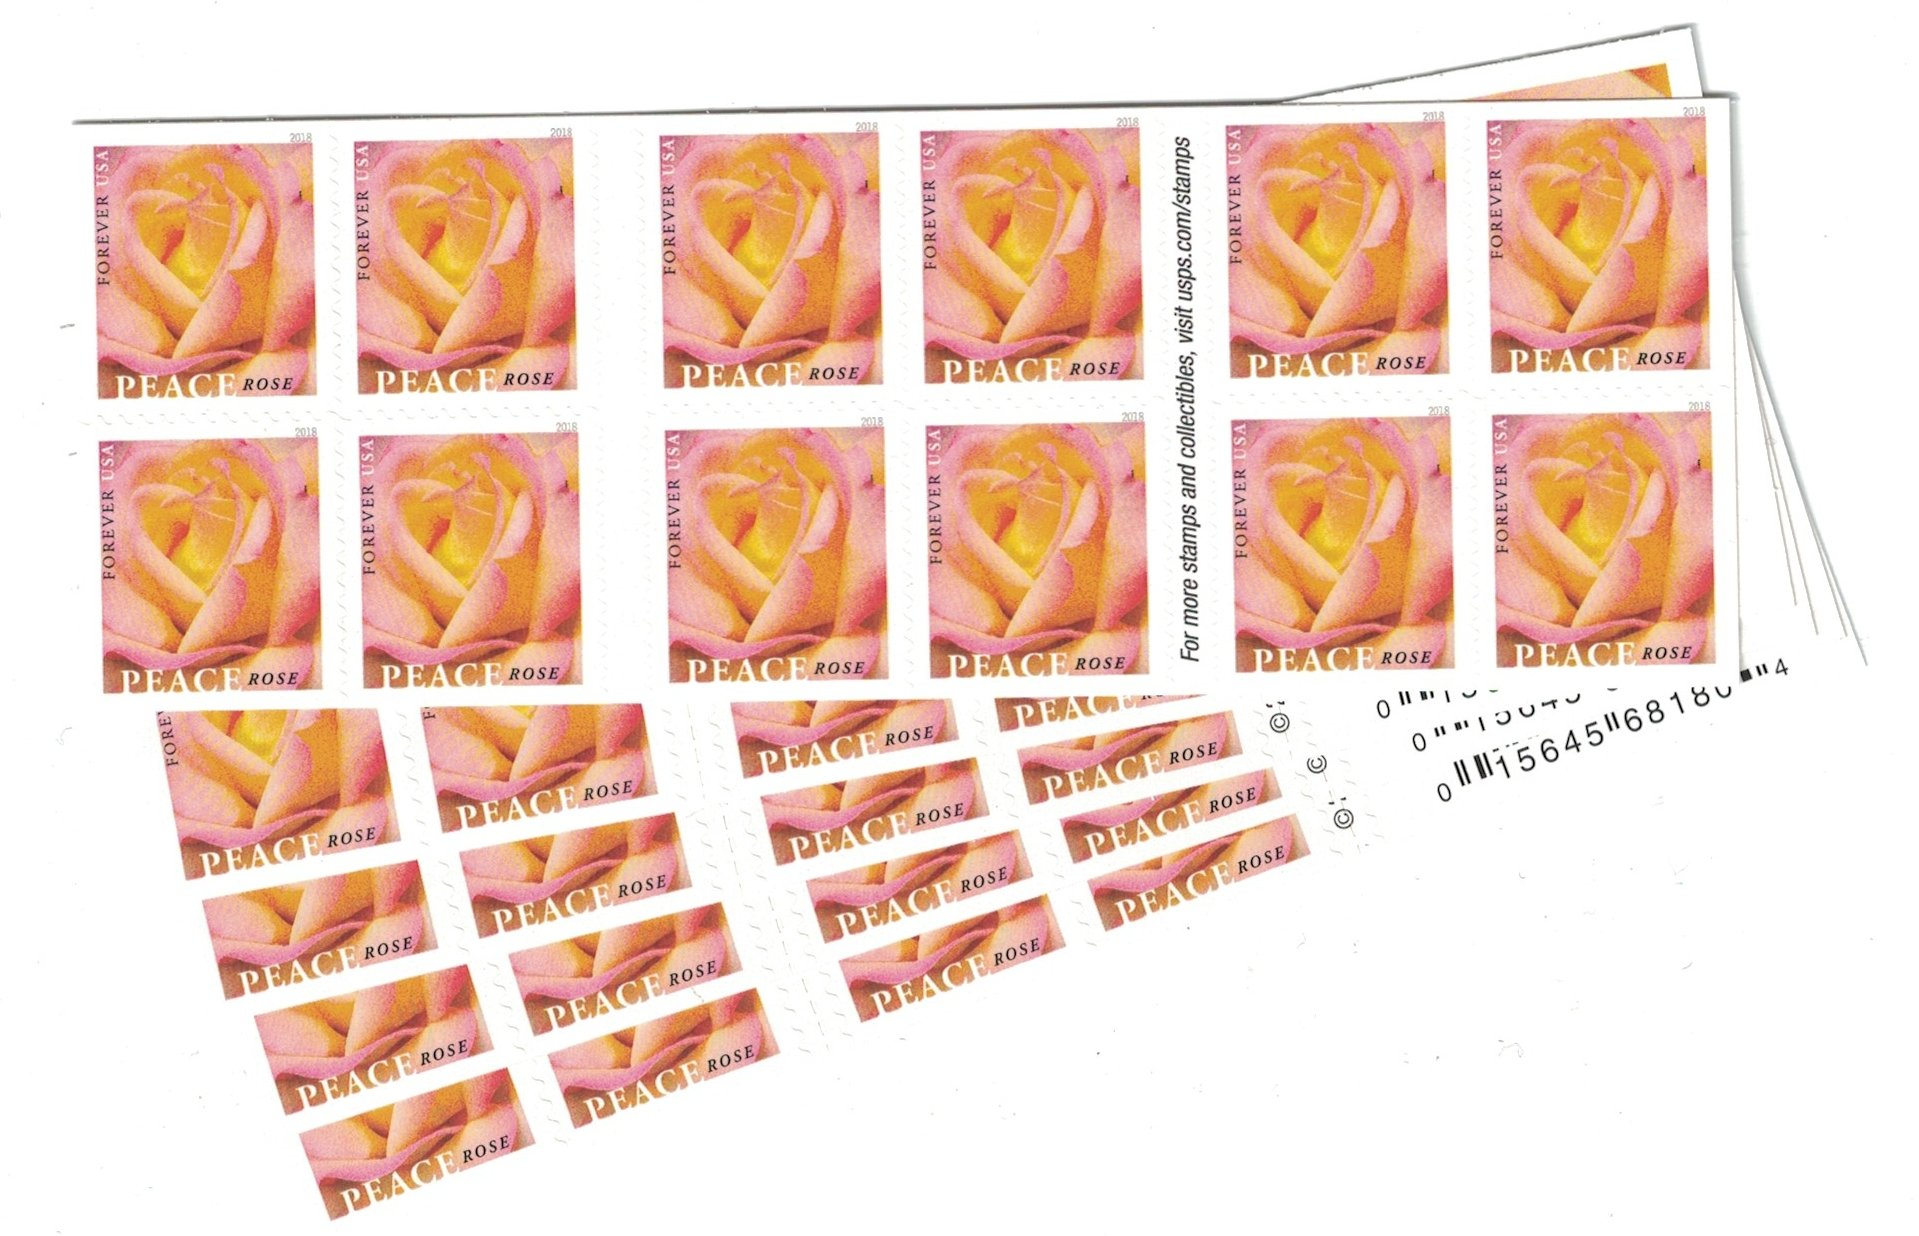 Peace Rose USPS Forever Stamp (5 Booklets (100 Stamps))